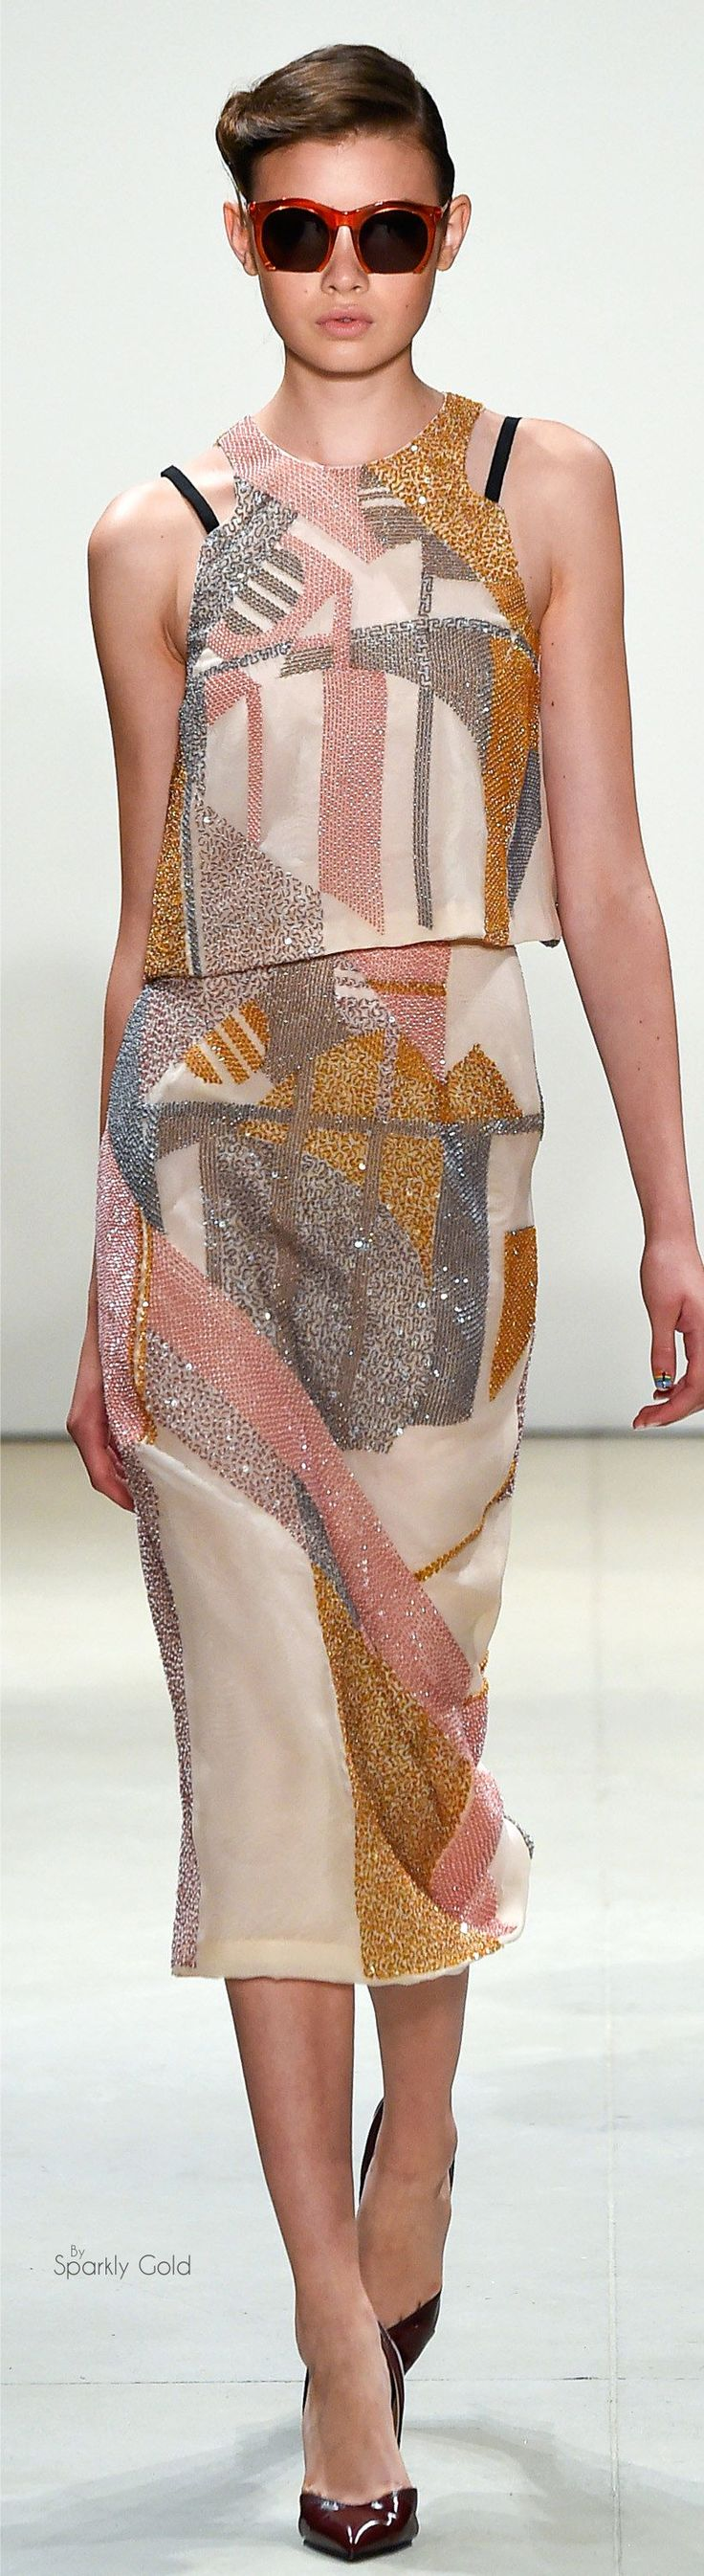 Bibhu Mohapatra S-16 RTW: pastel print top & skirt. #collage #cutout #surfacedesign